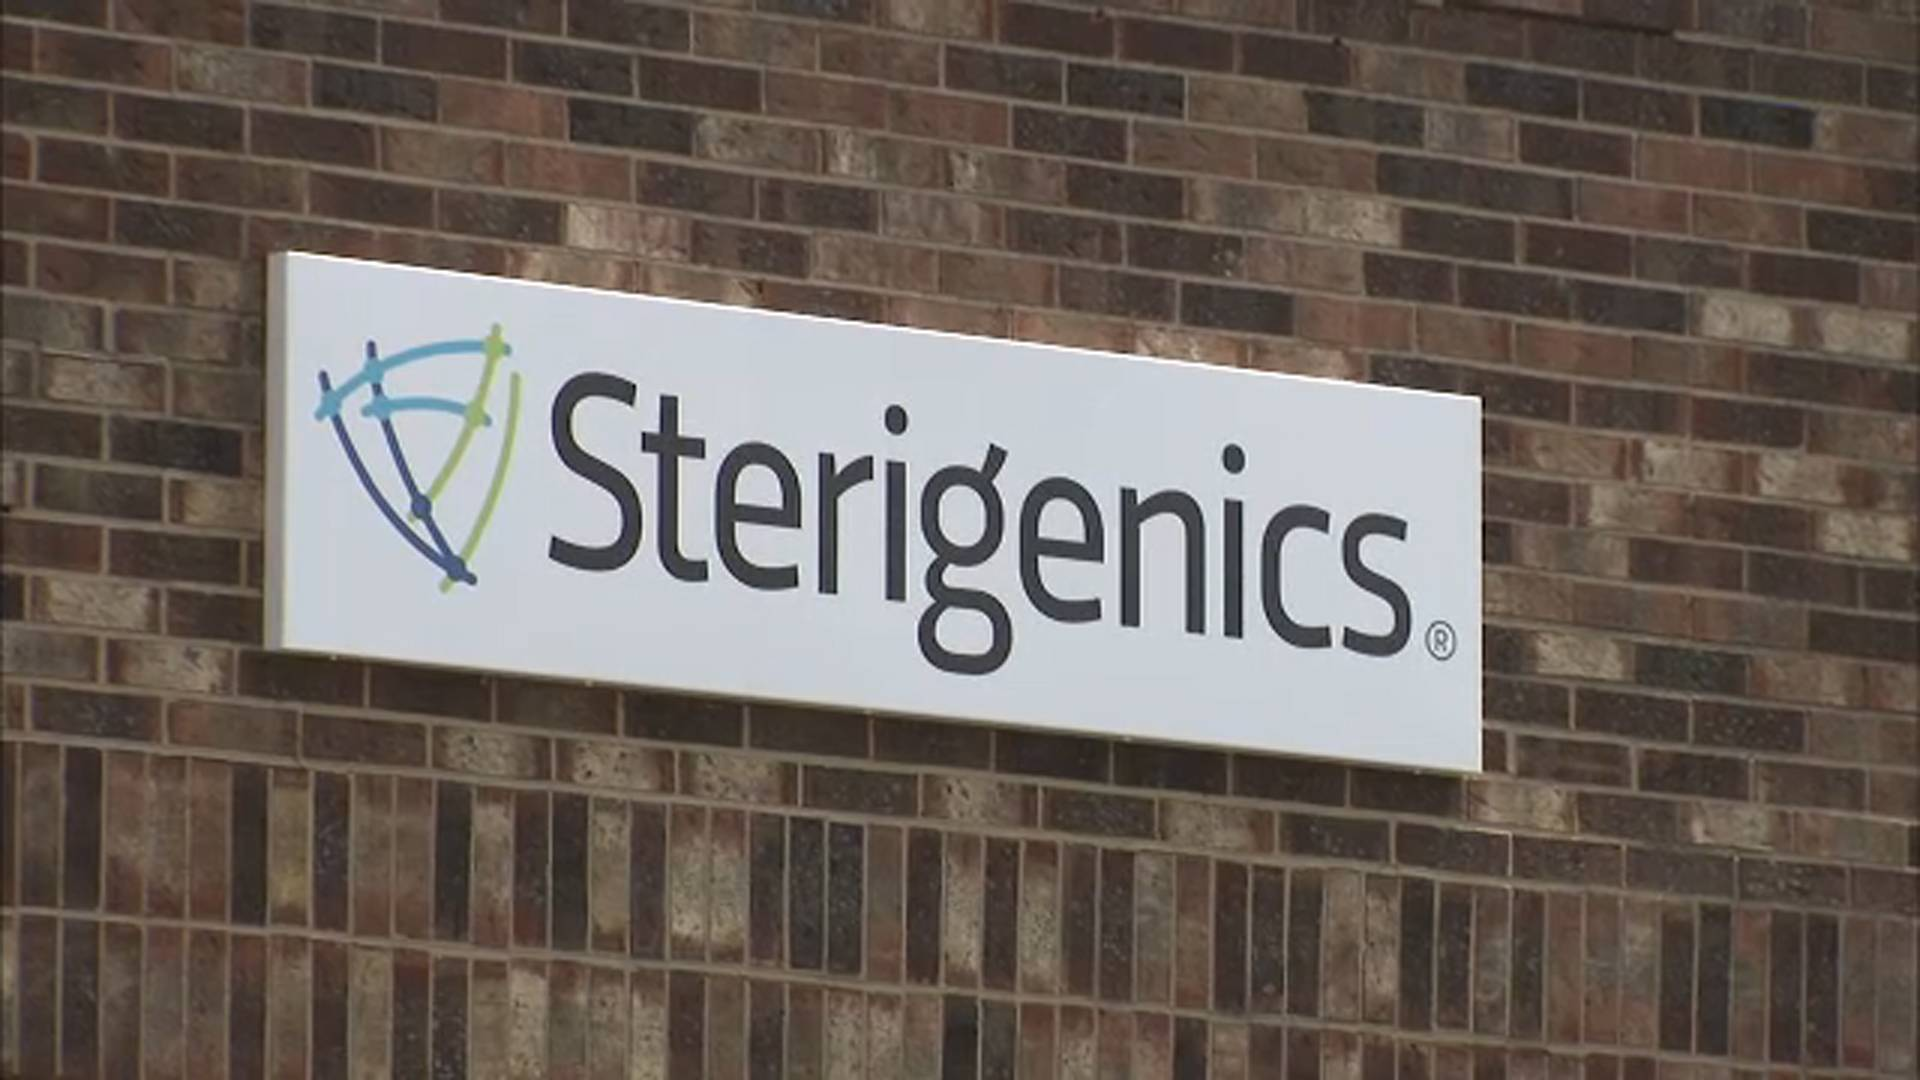 Cancer-causing gas emissions like those found at the Sterigenics facility in Willowbrook have been found at two plants in Lake County, environmental agencies reported.